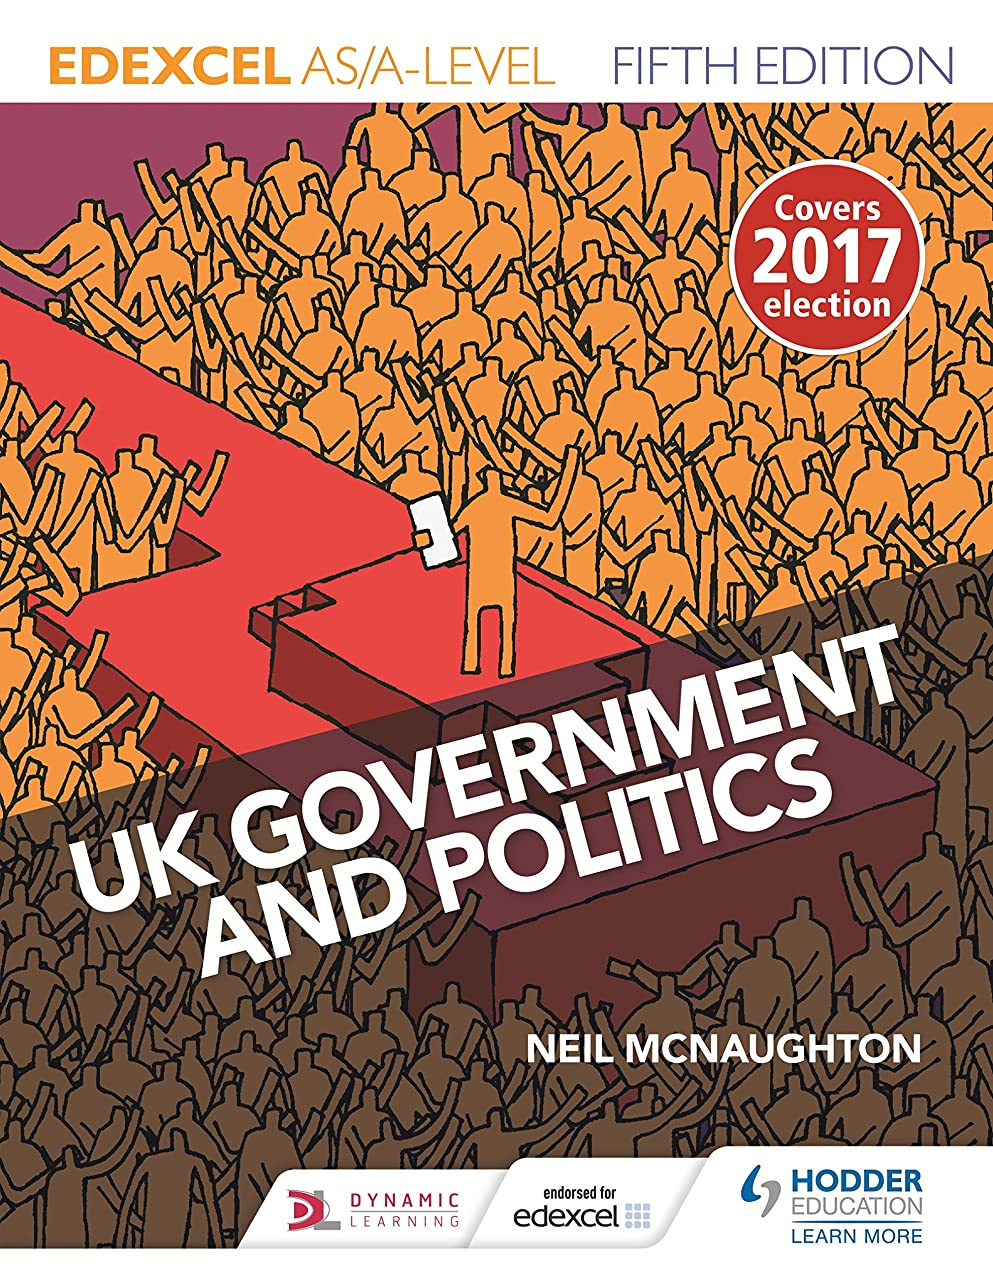 喪規模にんじんEdexcel UK Government and Politics for AS/A Level Fifth Edition (English Edition)